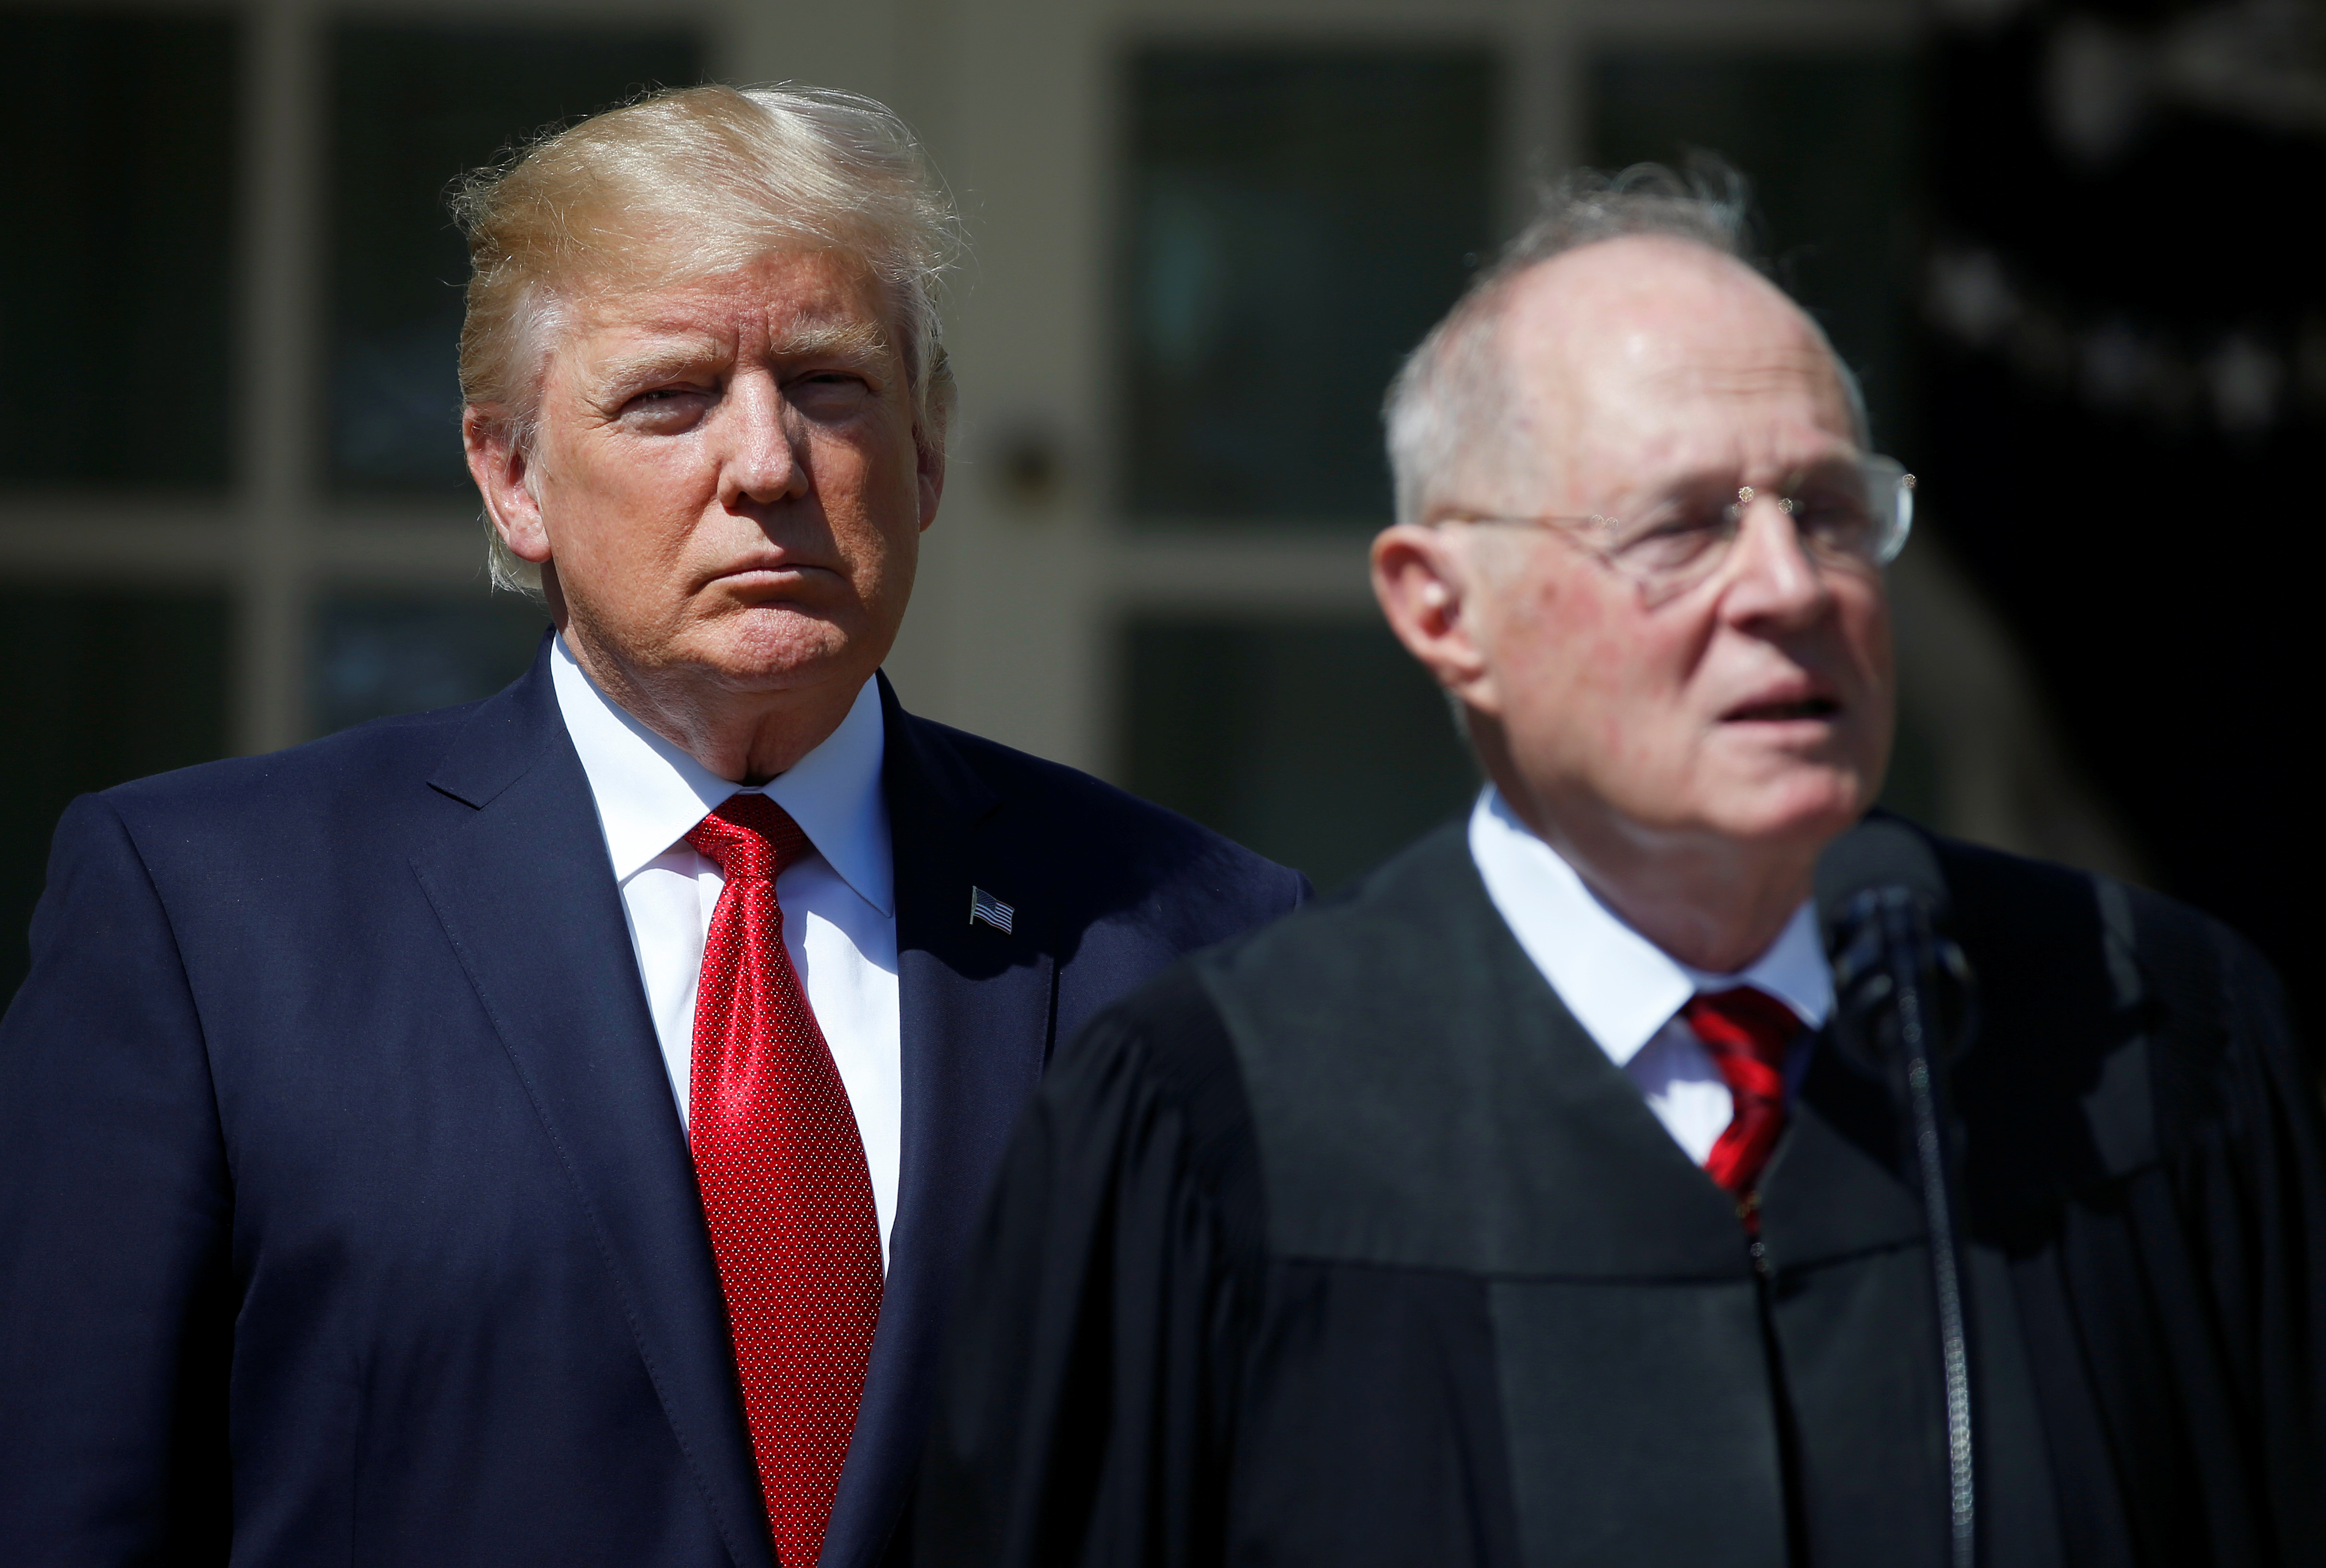 President Donald Trump and Justice Anthony Kennedy at the White House on April 10, 2017.